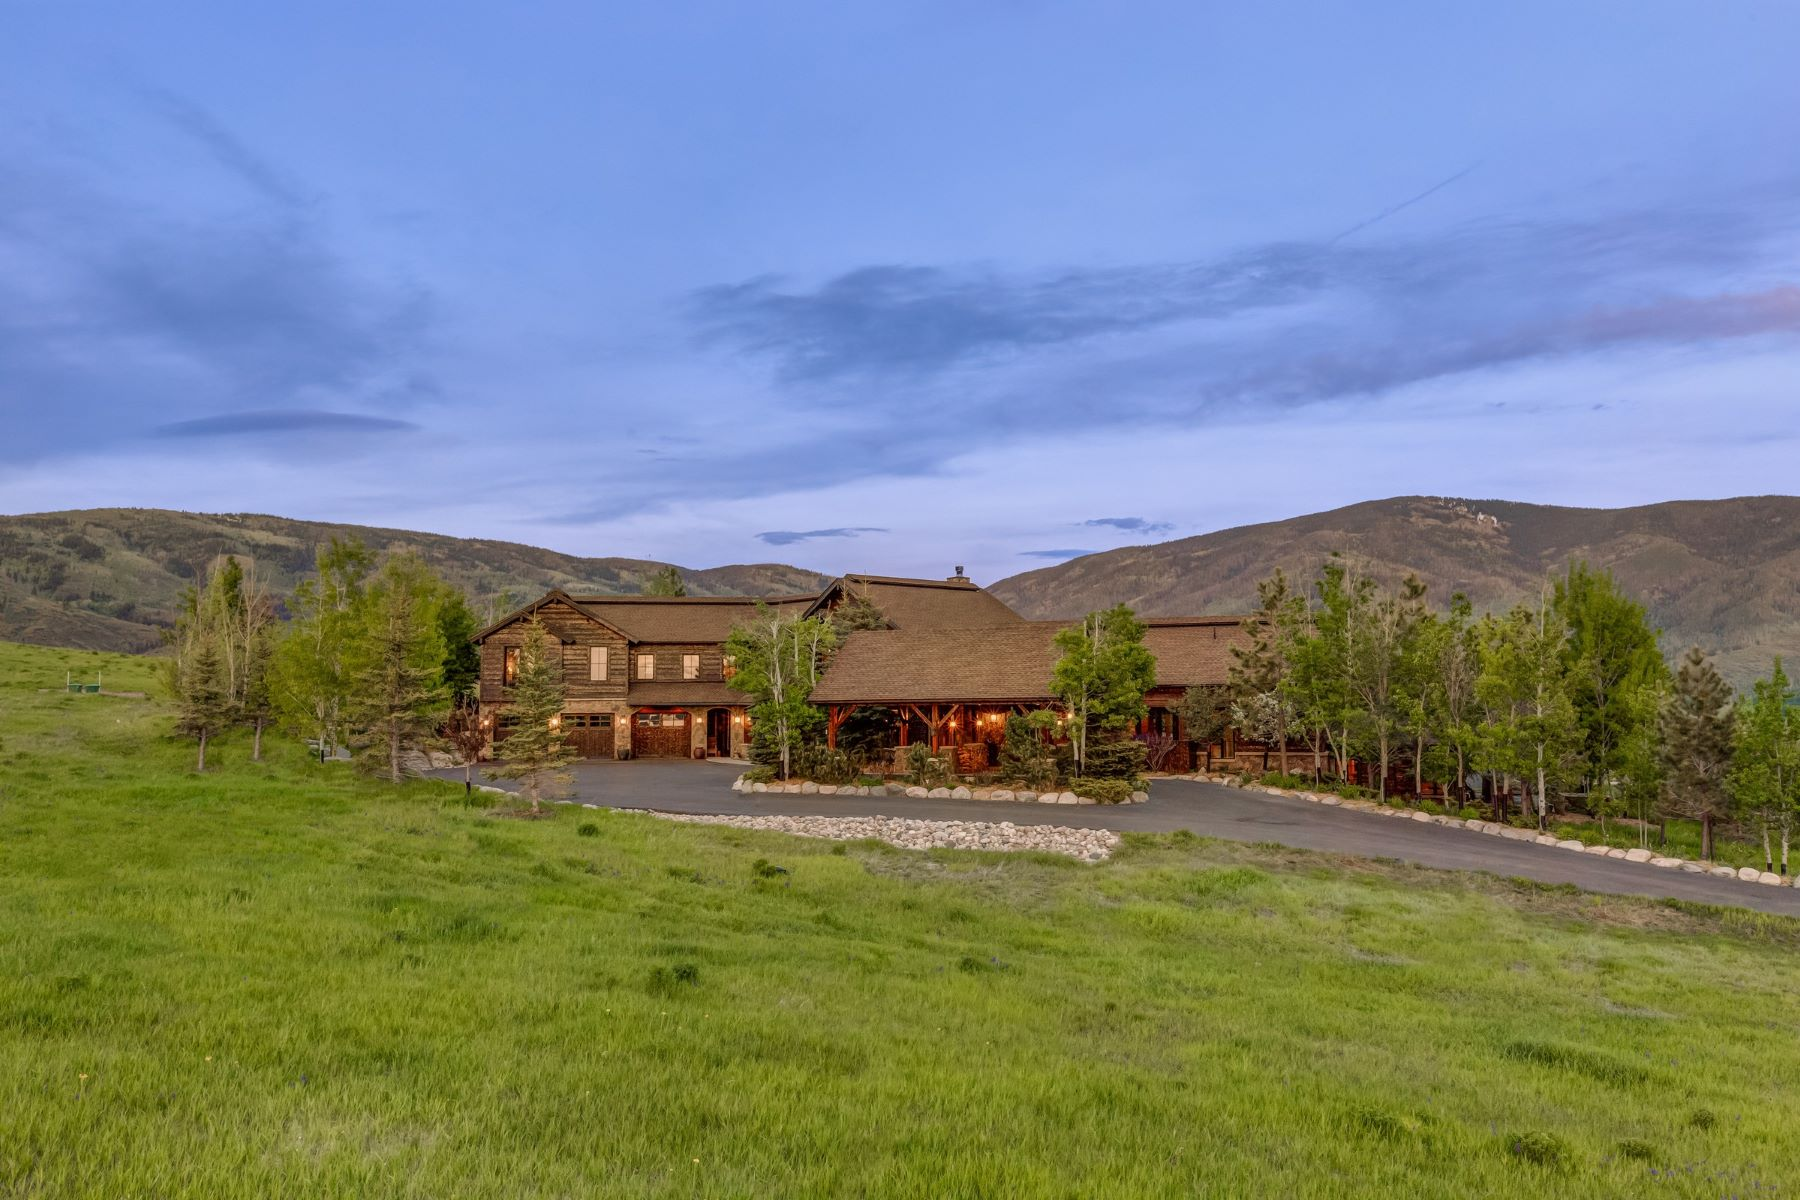 Casa Unifamiliar por un Venta en Lake Catamount Beautiful High-End Design Lake Catamount Home 32120 County Road 14C Steamboat Springs, Colorado, 80487 Estados Unidos